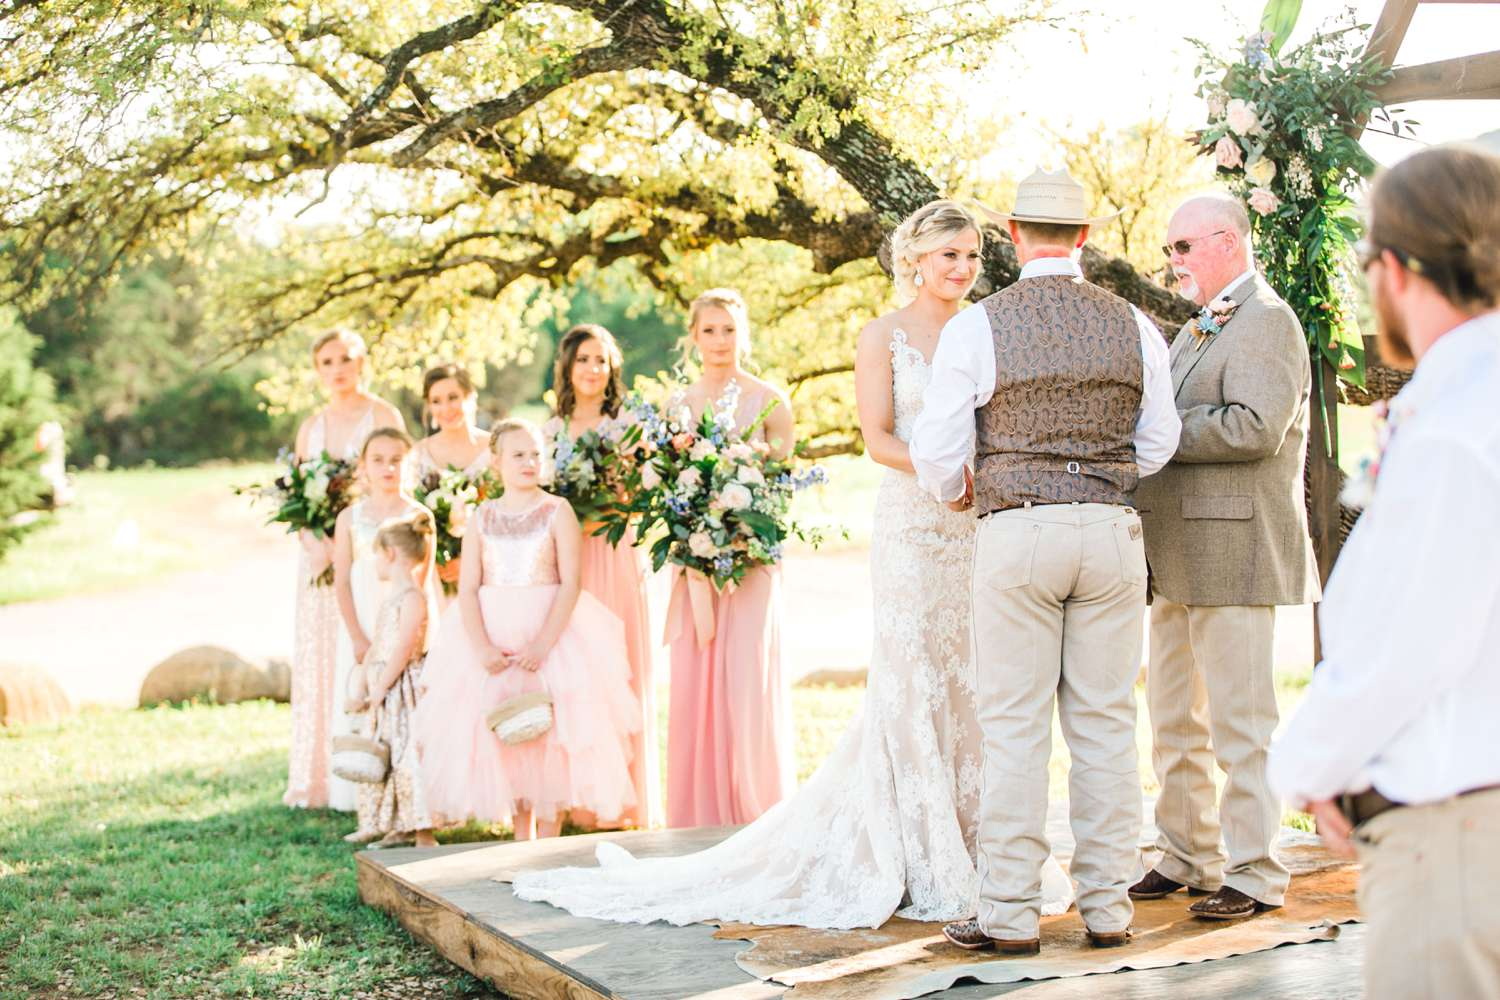 SARAH+TREVOR+BADGETT+SPARROW+CREEK+GRAHAM+TEXAS+ALLEEJ+WEDDINGS_0067.jpg